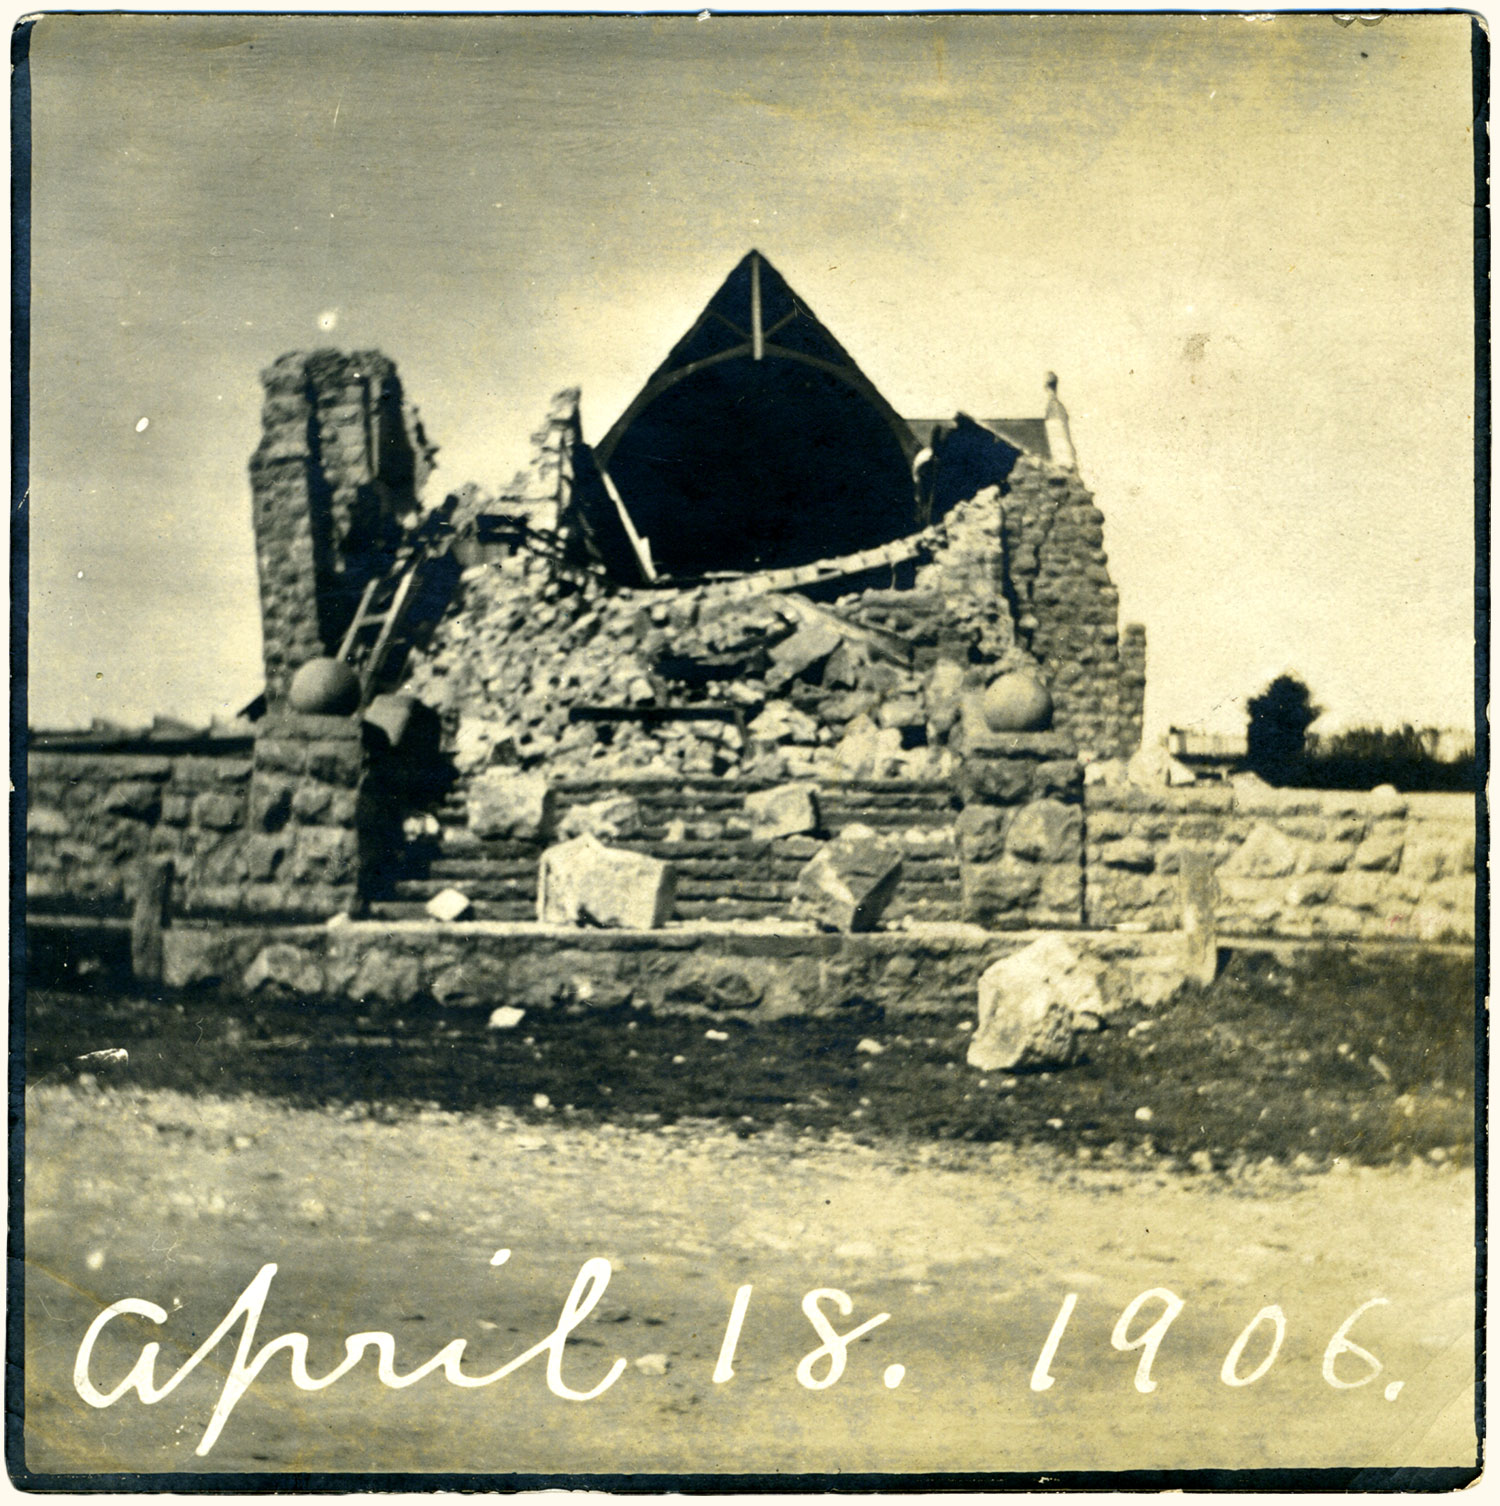 Ruins of the six-year-old stone church, demolished by the 1906 earthquake. (The smaller, wood-frame church built in 1860 still serves its congregation today.) Photo by Ella Jorgensen, circa 1906.